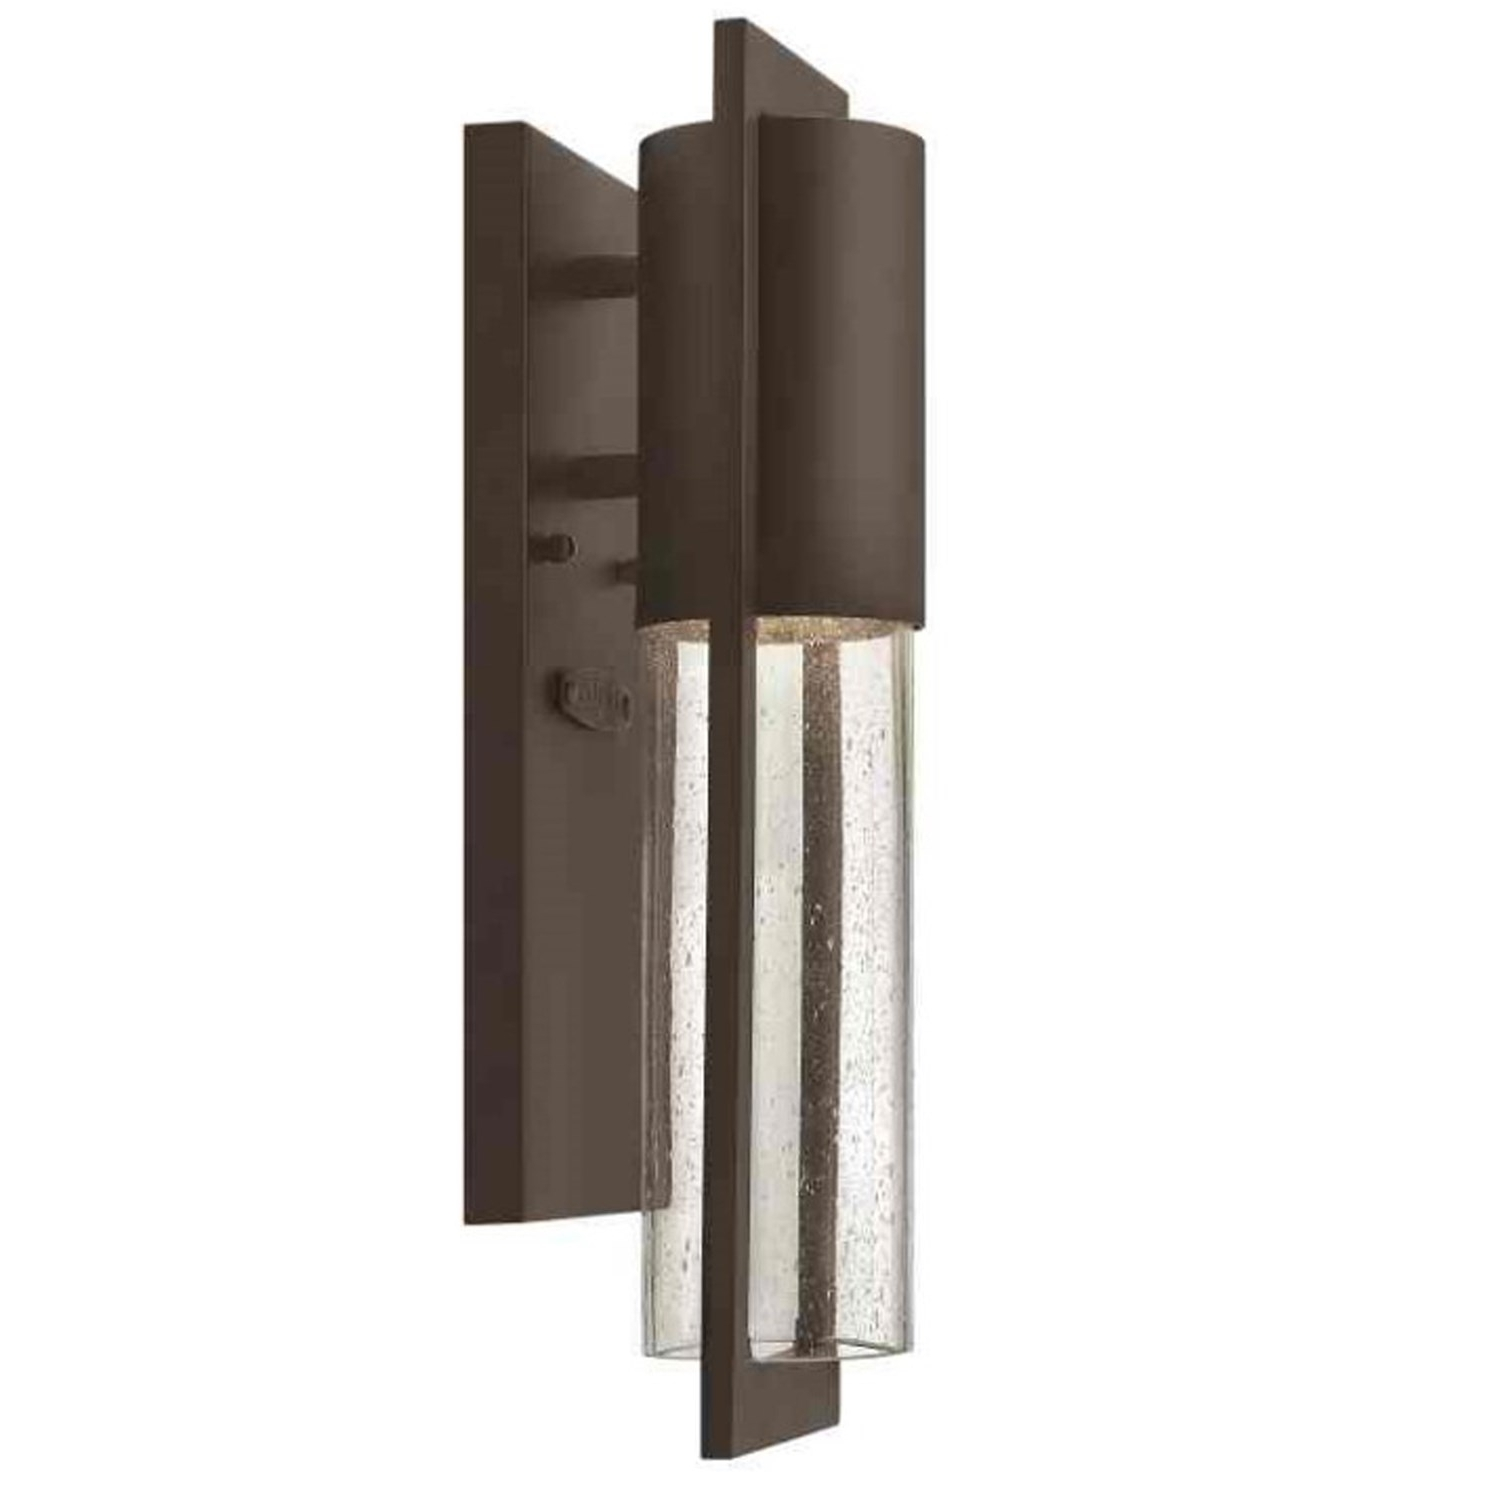 Hinkley 1326kz Led Dwell Mini 1 Light Led Outdoor Wall Sconce In In Widely Used Hinkley Outdoor Wall Lighting (View 12 of 20)